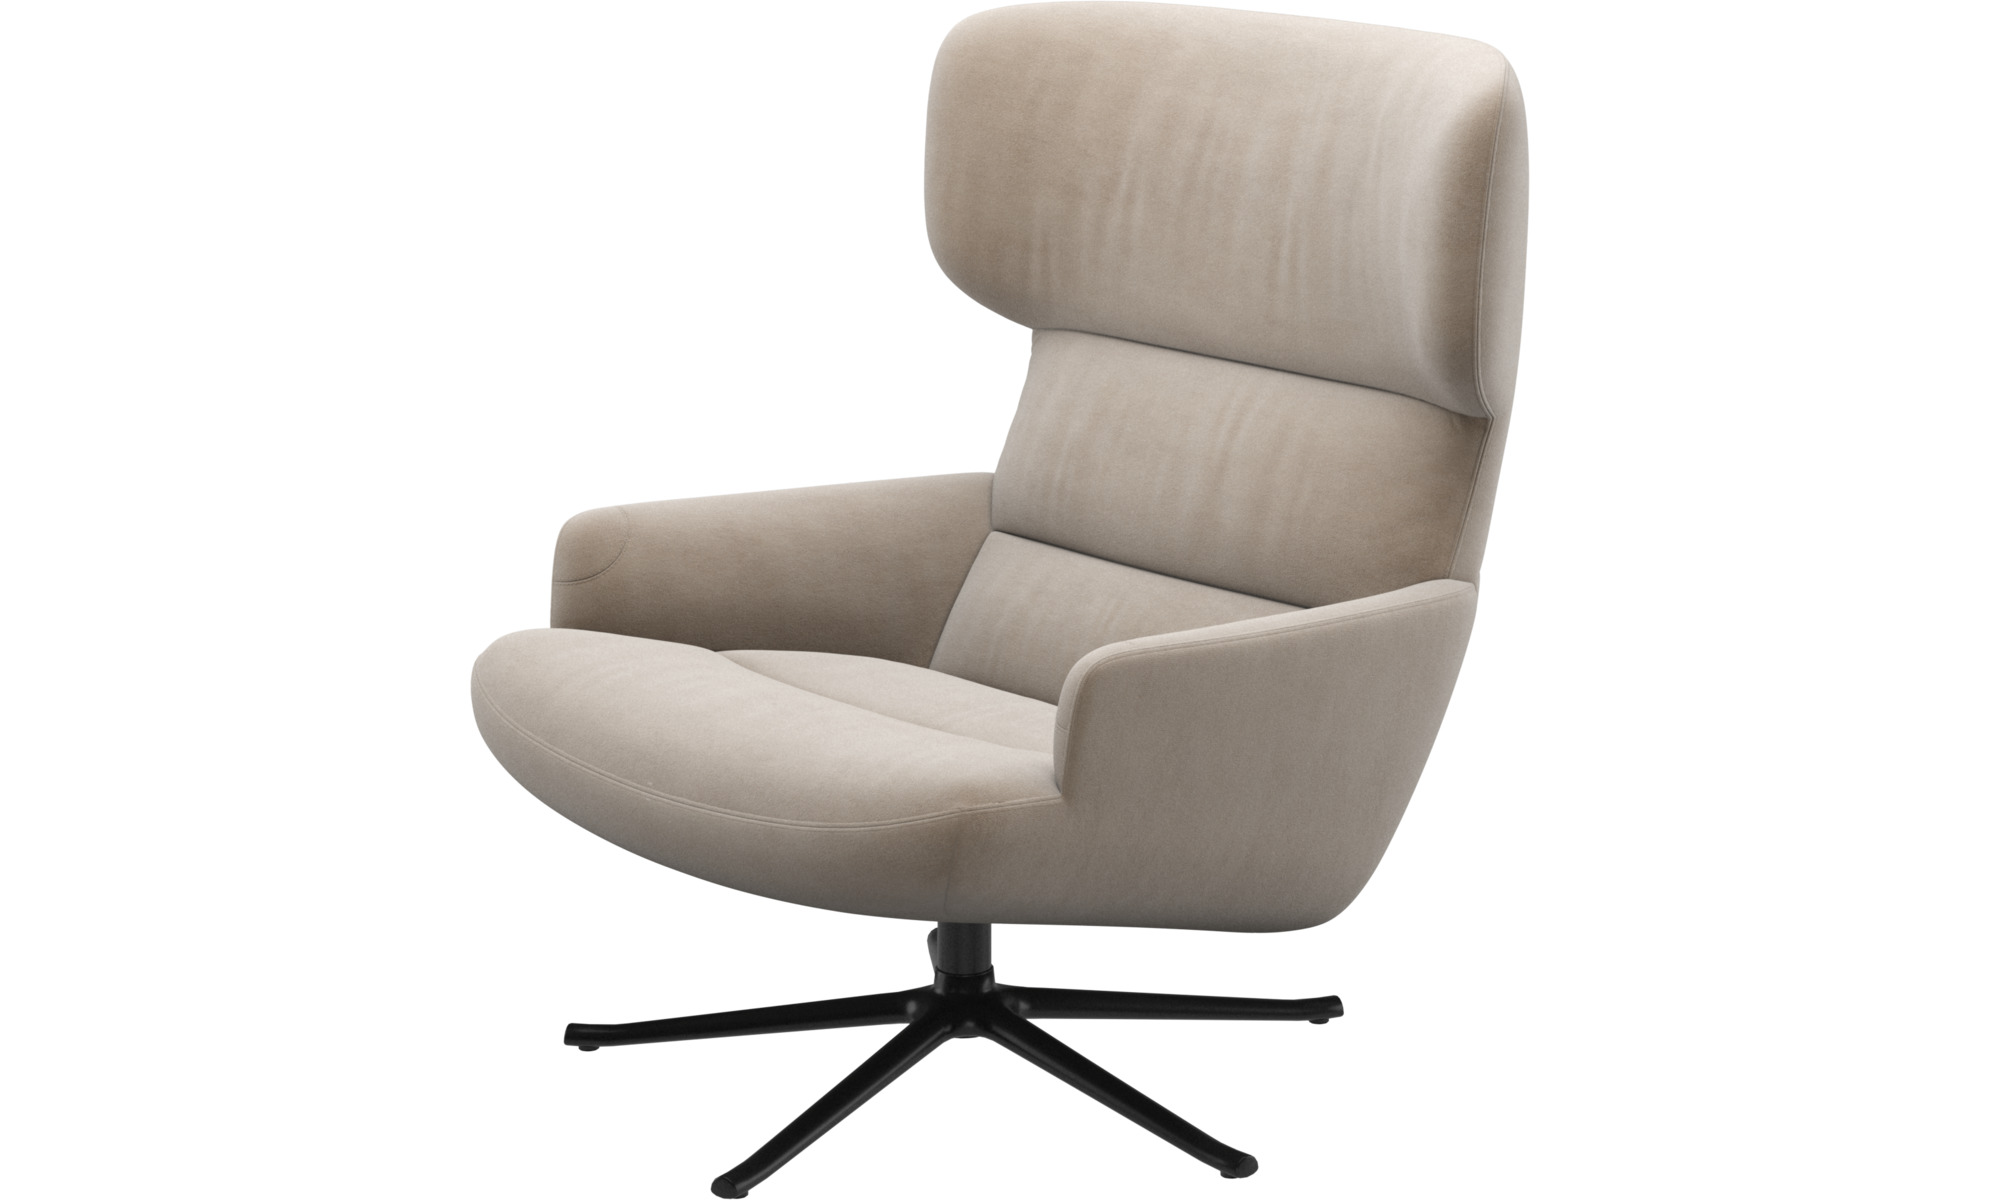 Trento chair with swivel function